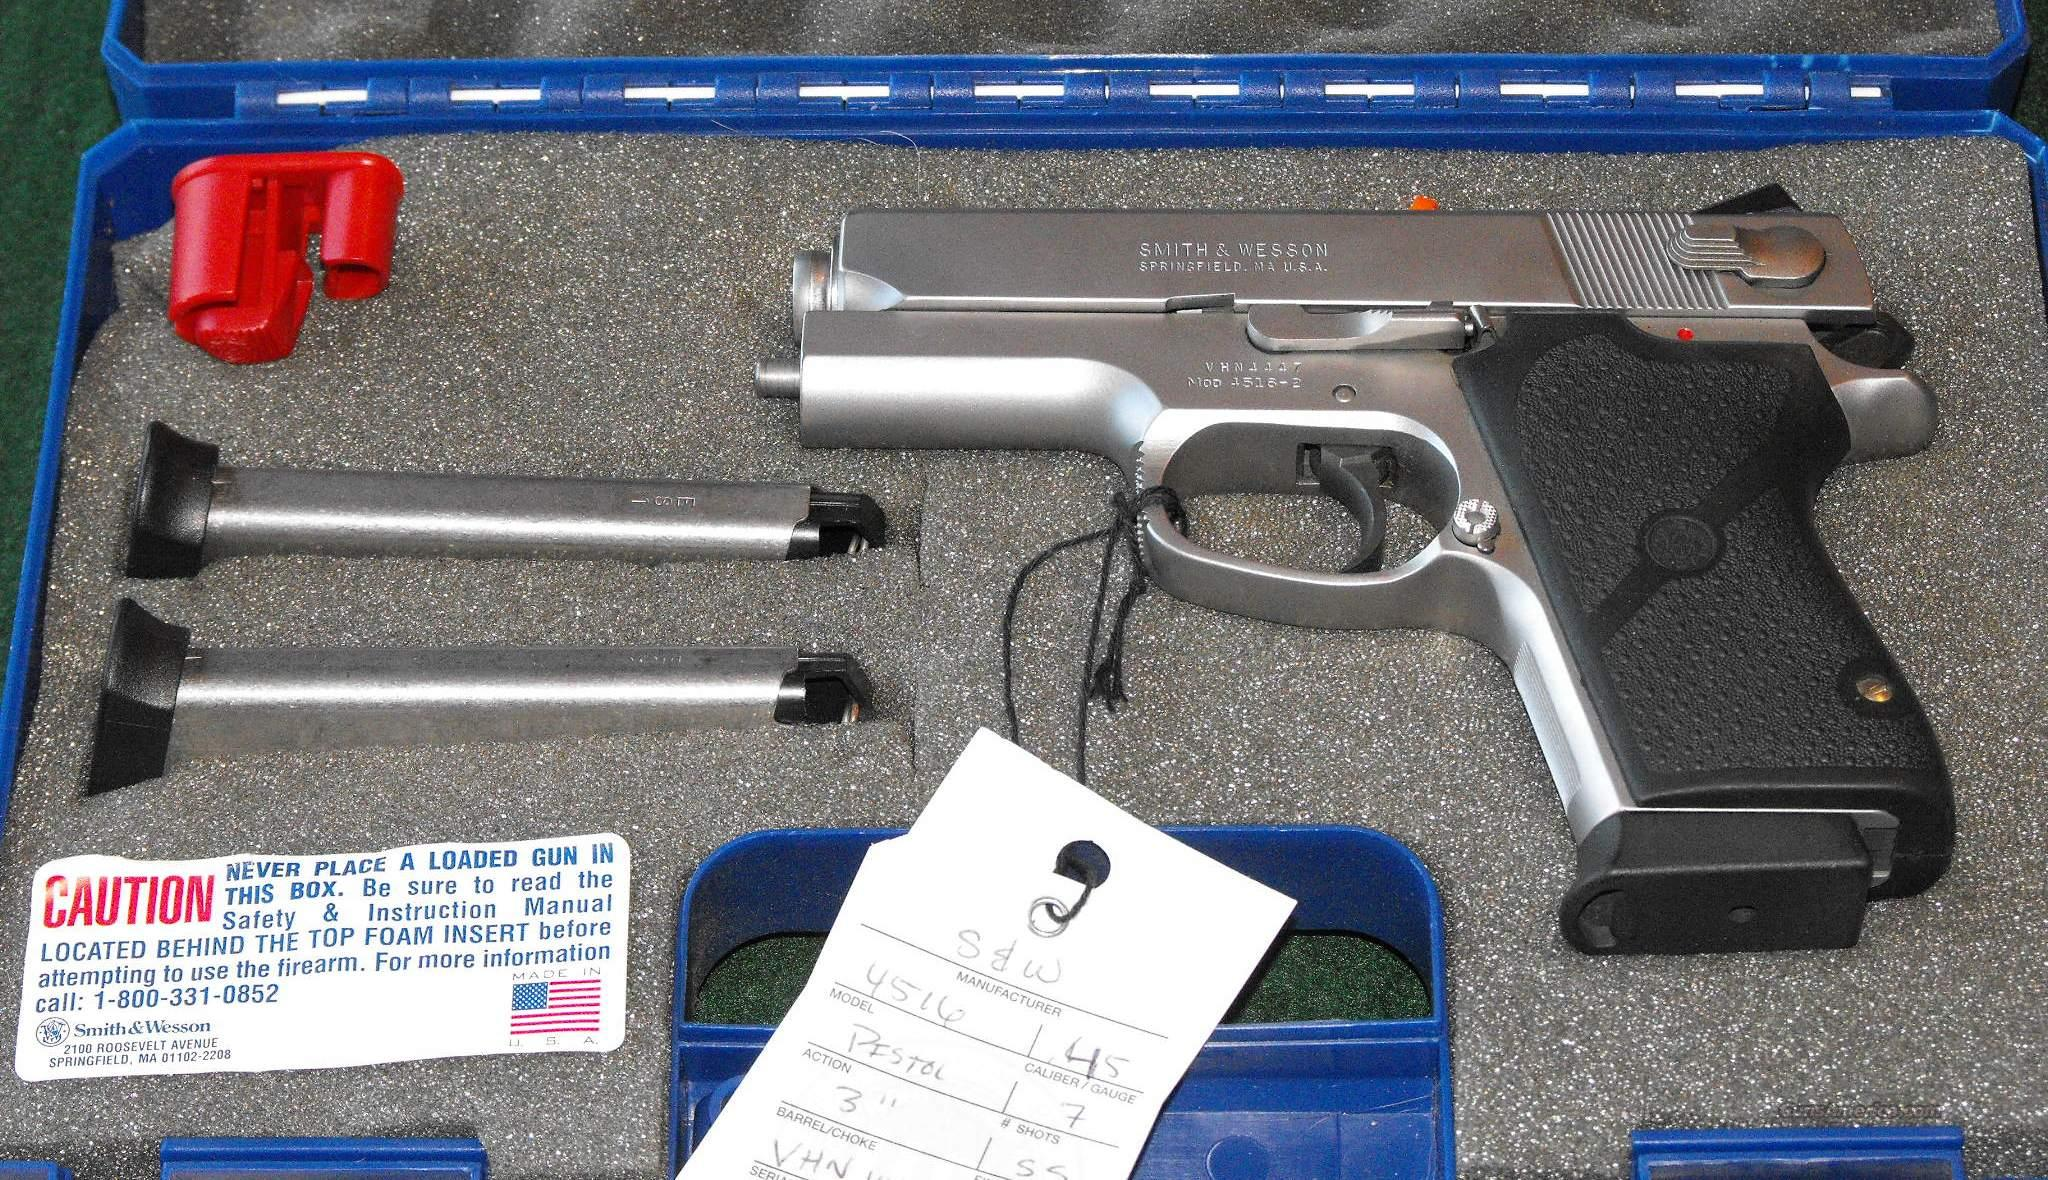 S&W 4516 Stanless Steel Frame Full Size .45ACP   Guns > Pistols > Smith & Wesson Pistols - Autos > Steel Frame